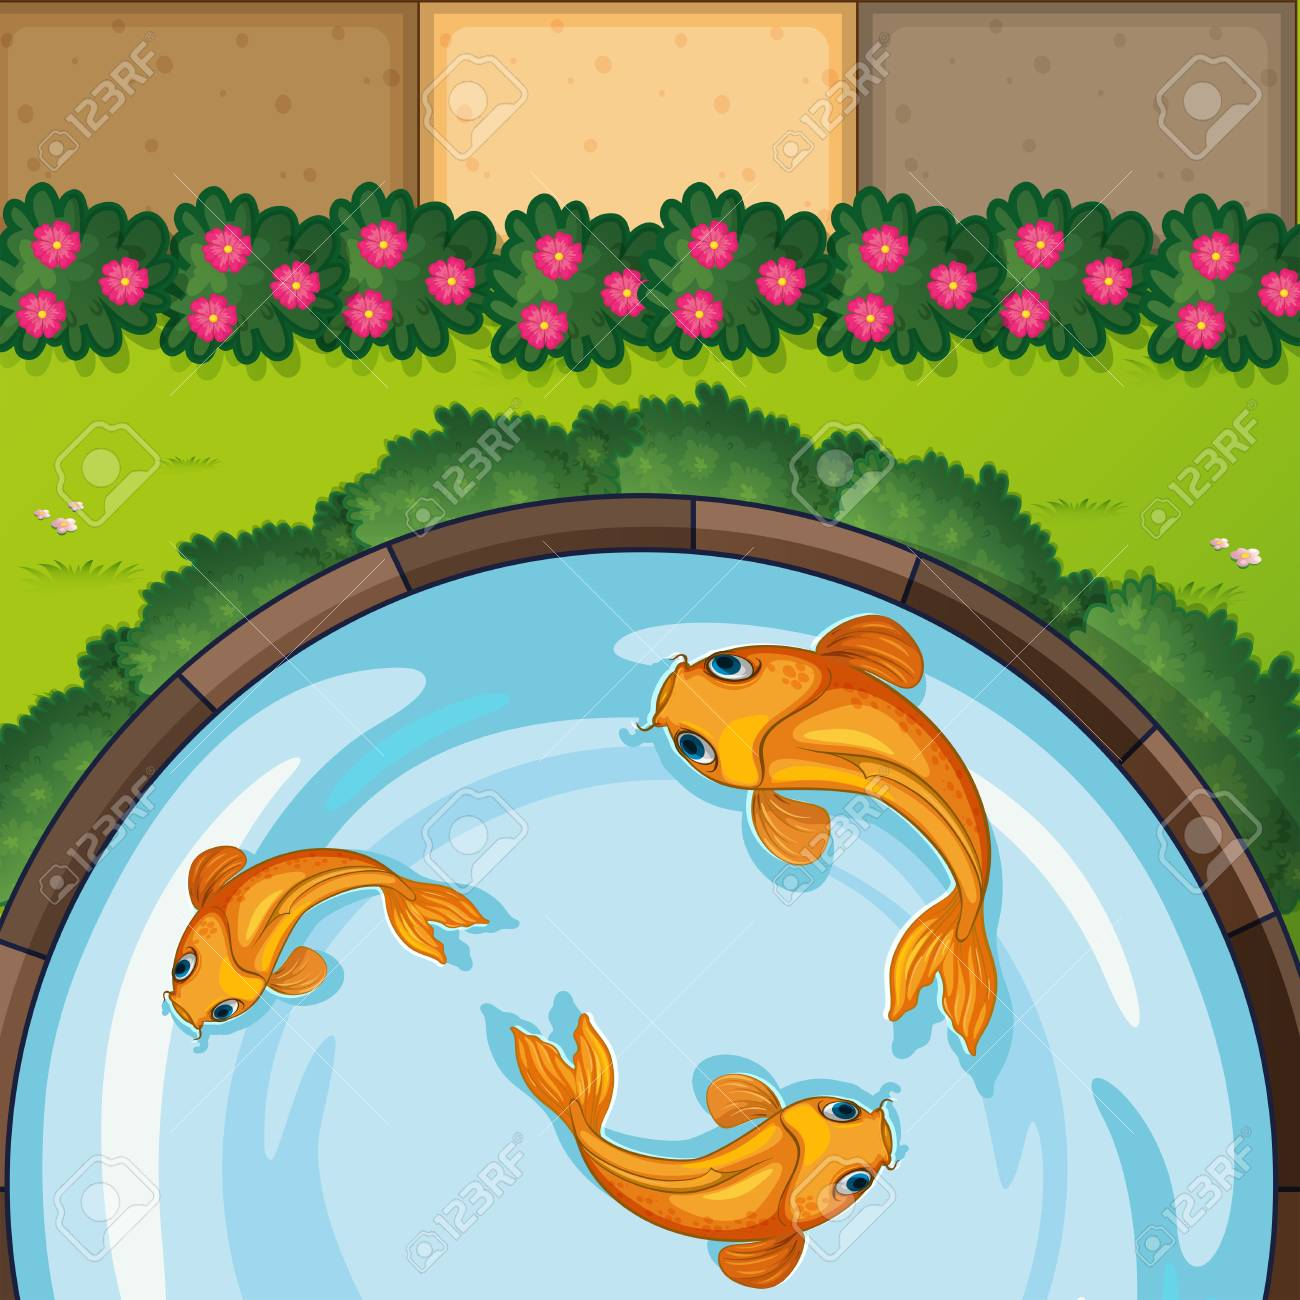 pond clipart - Royalty-Free Images | Graphics Factory